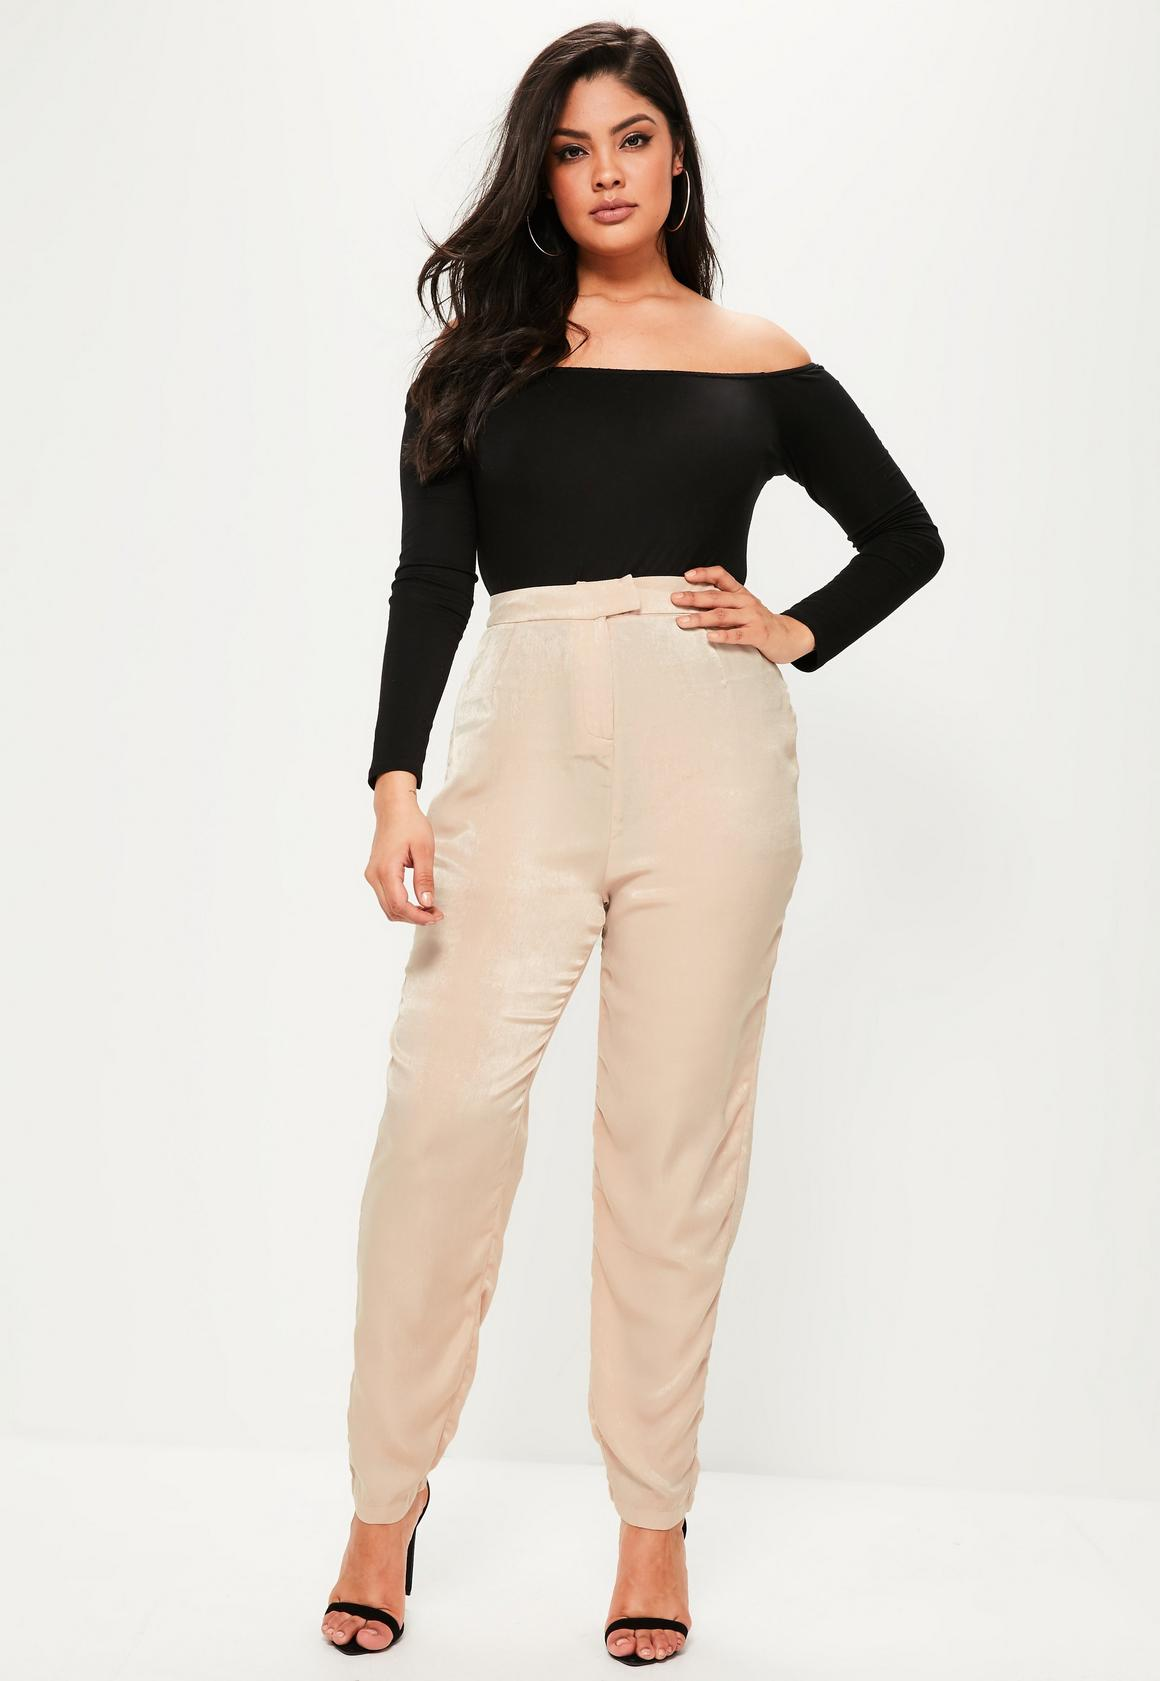 Plus Size Cream High Waisted Trousers Plus Size Cream High Waisted Trousers - Plus Size Trousers Womens Pants 16+ From Missguided